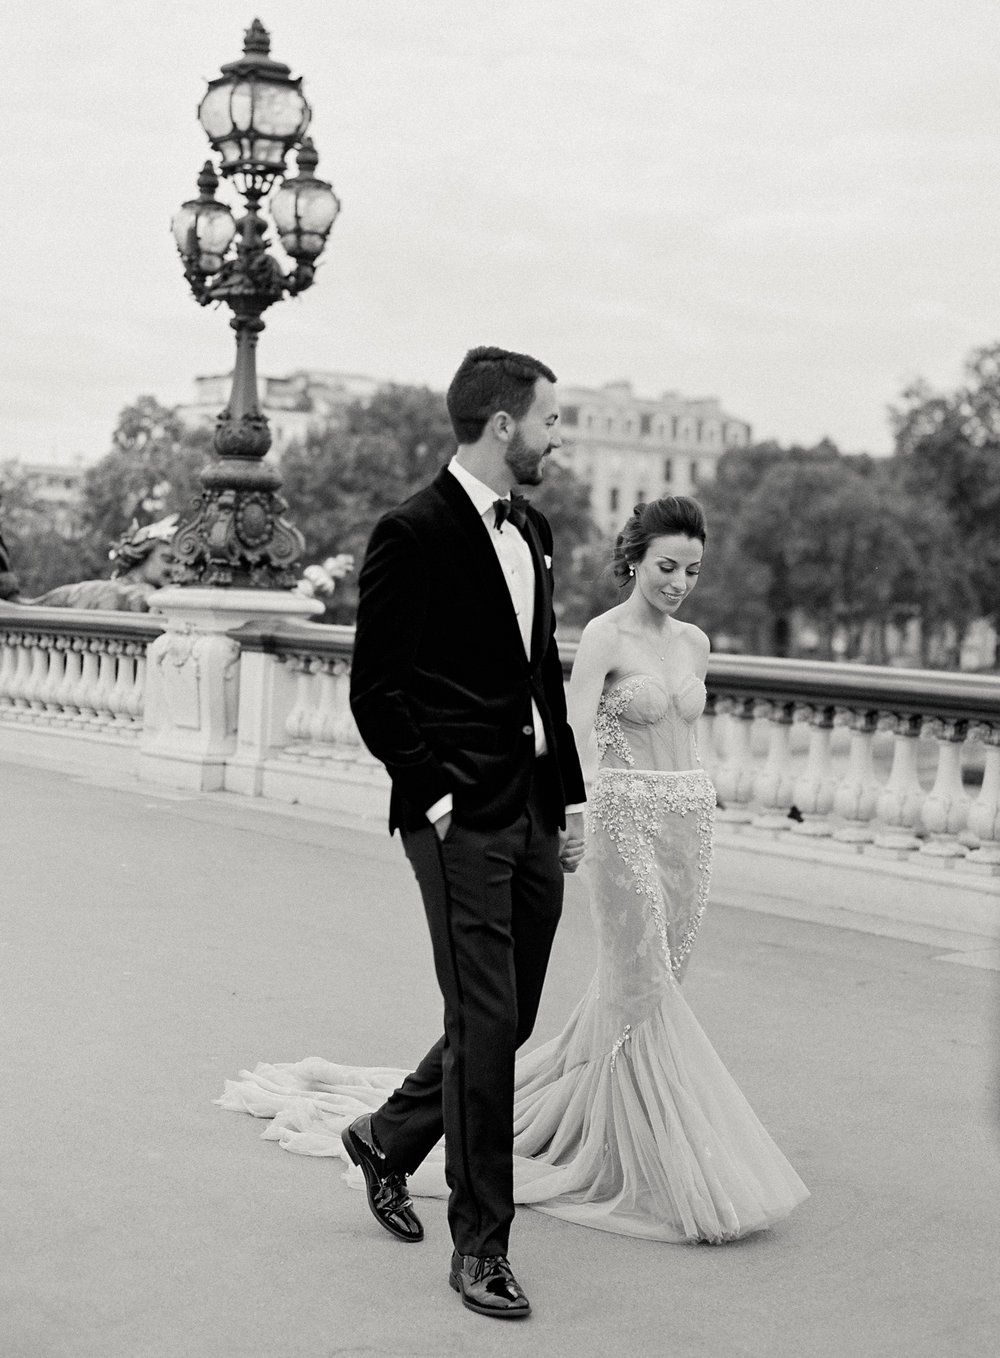 Paris-France-Film-Wedding-Carrie King Photographer-80.jpg